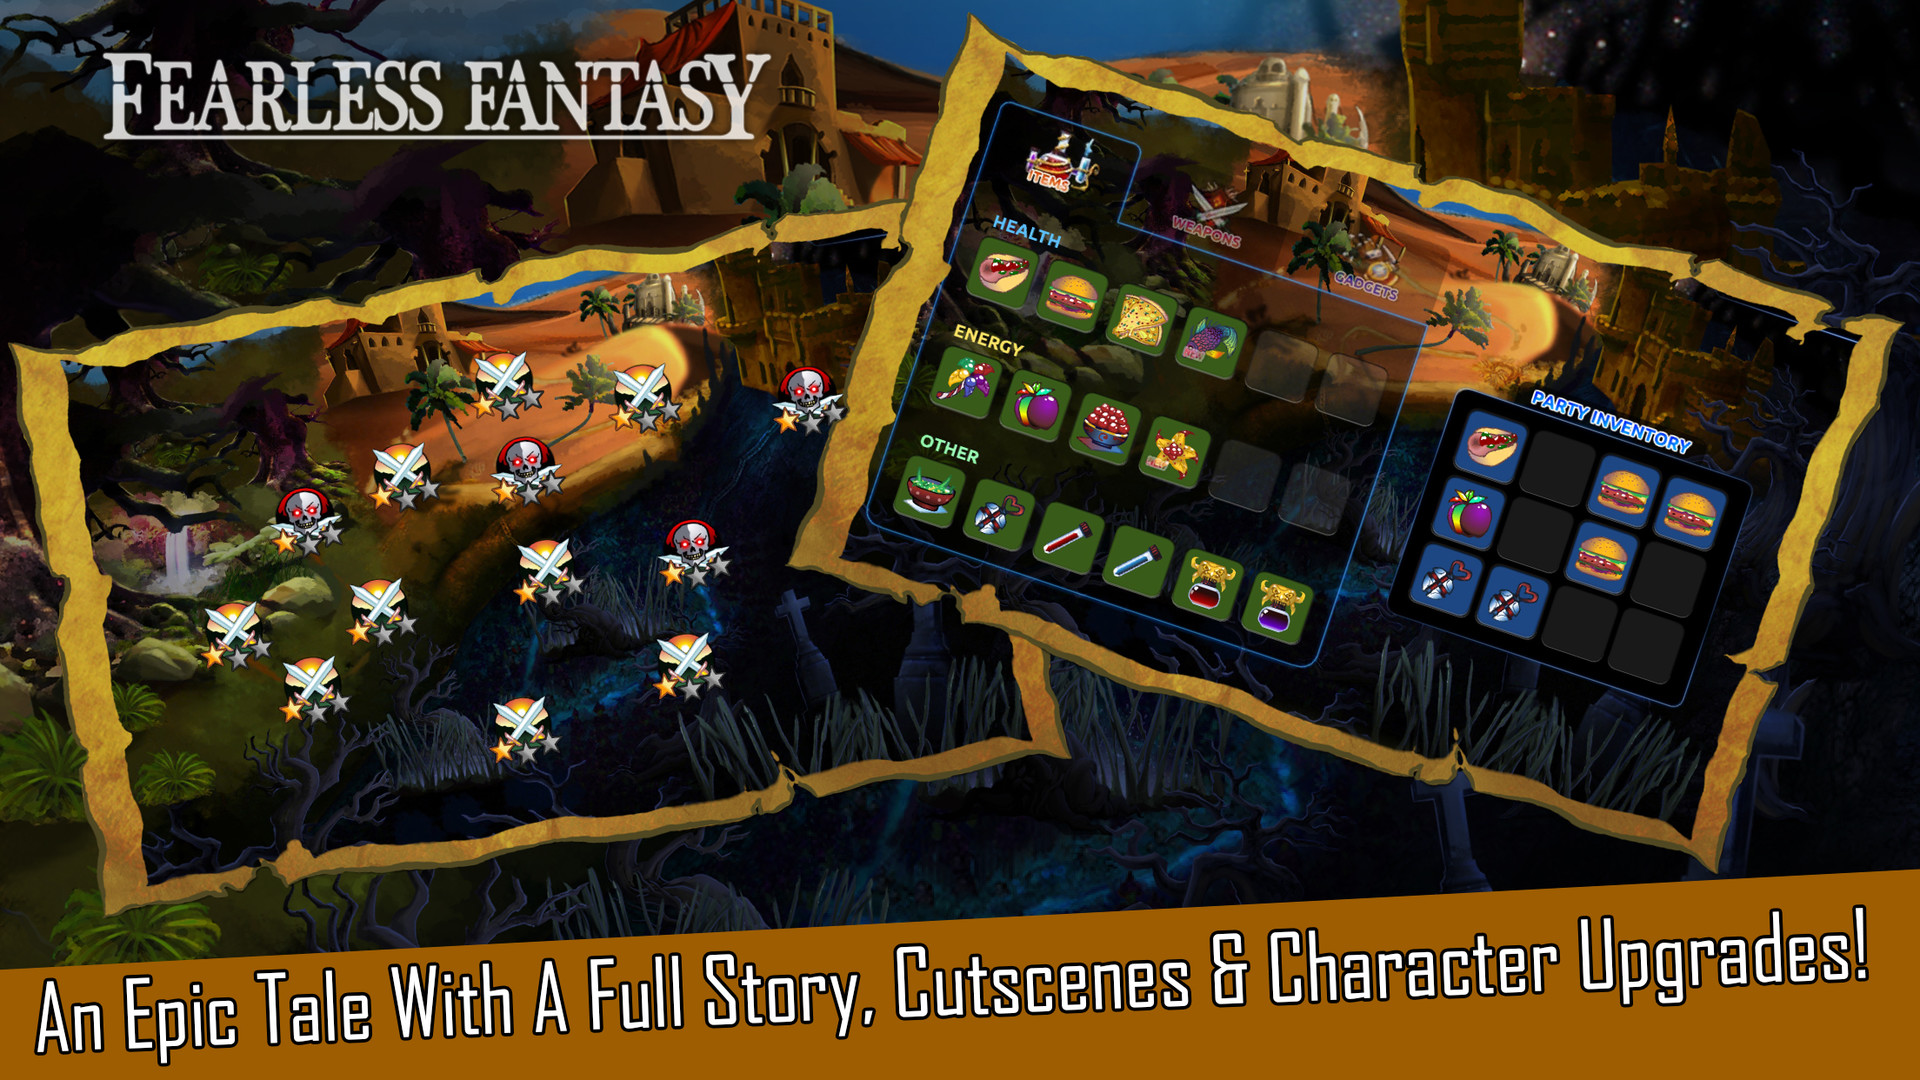 Fearless Fantasy (Steam Key, Region Free)